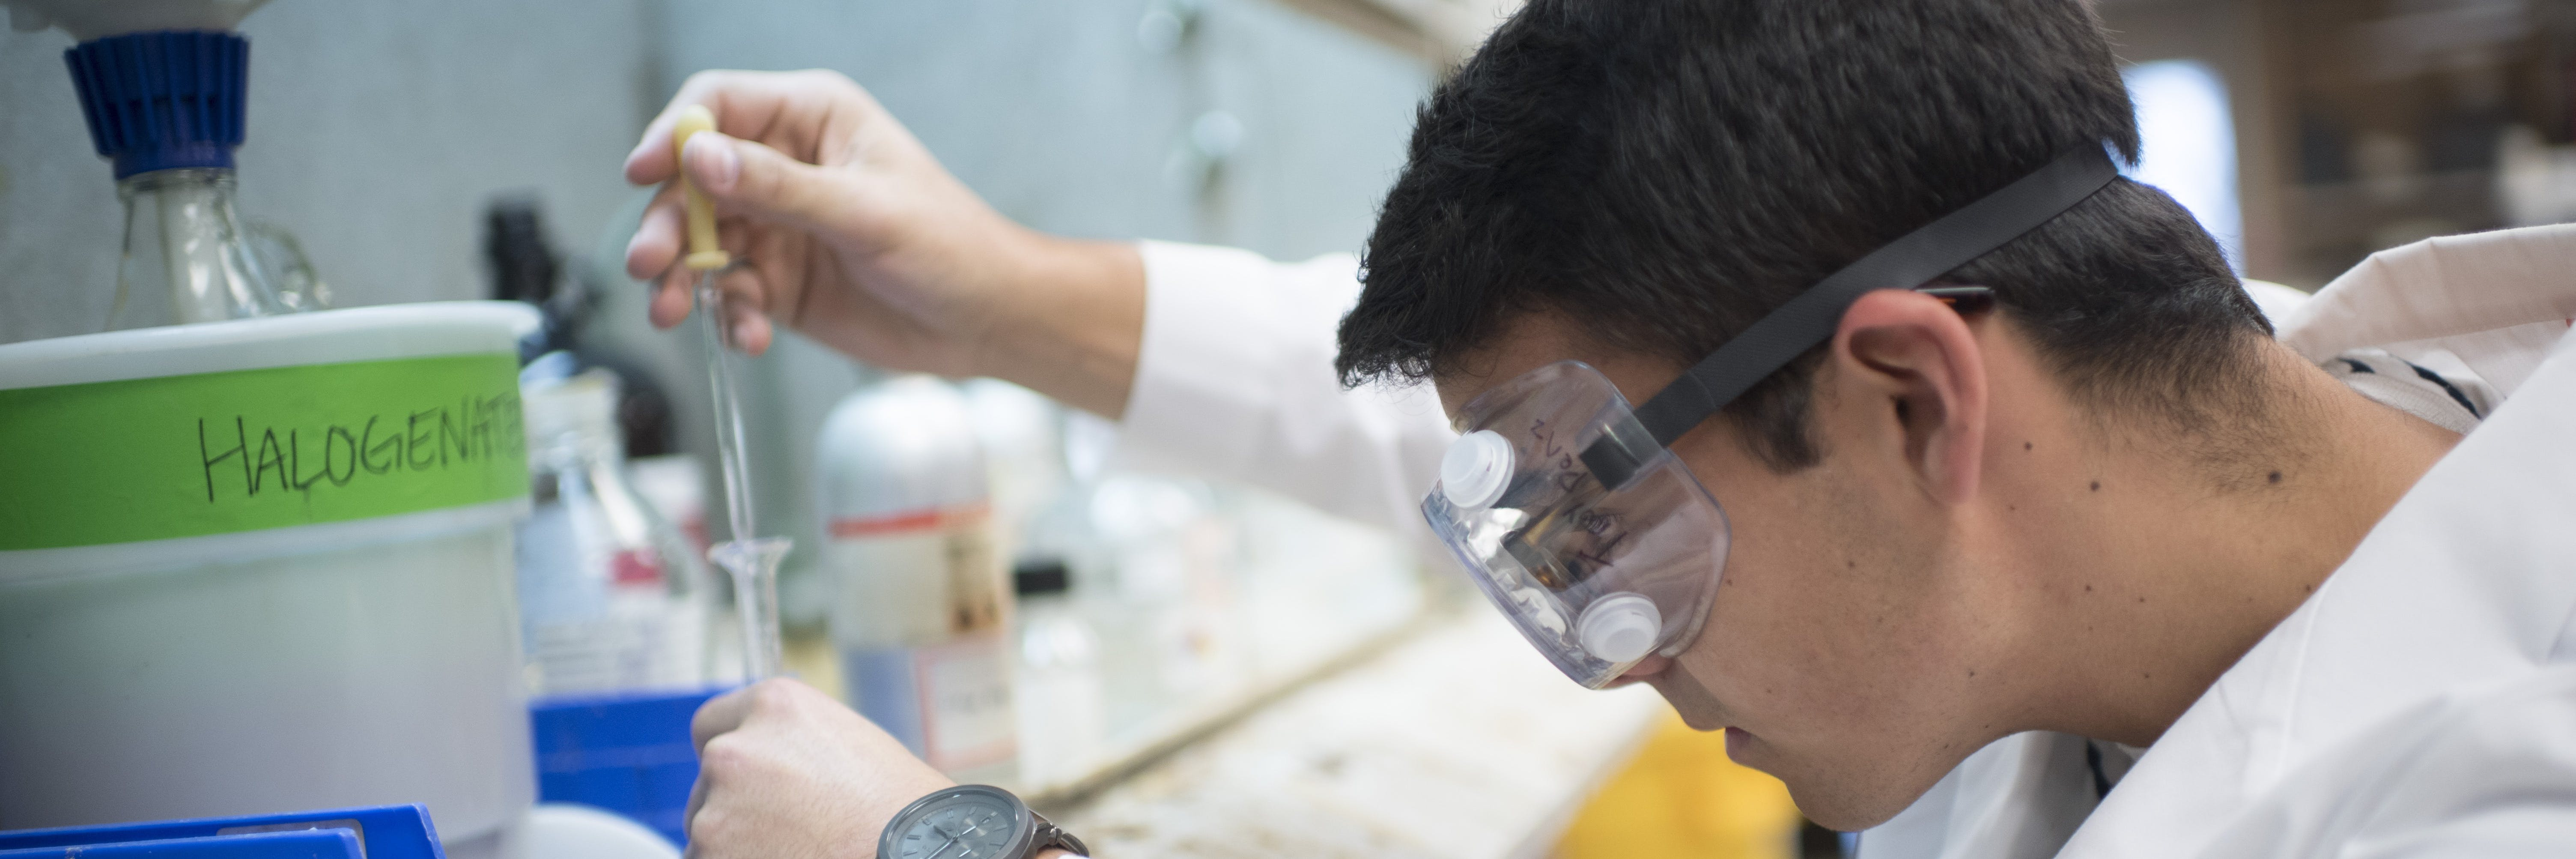 A student working in the lab